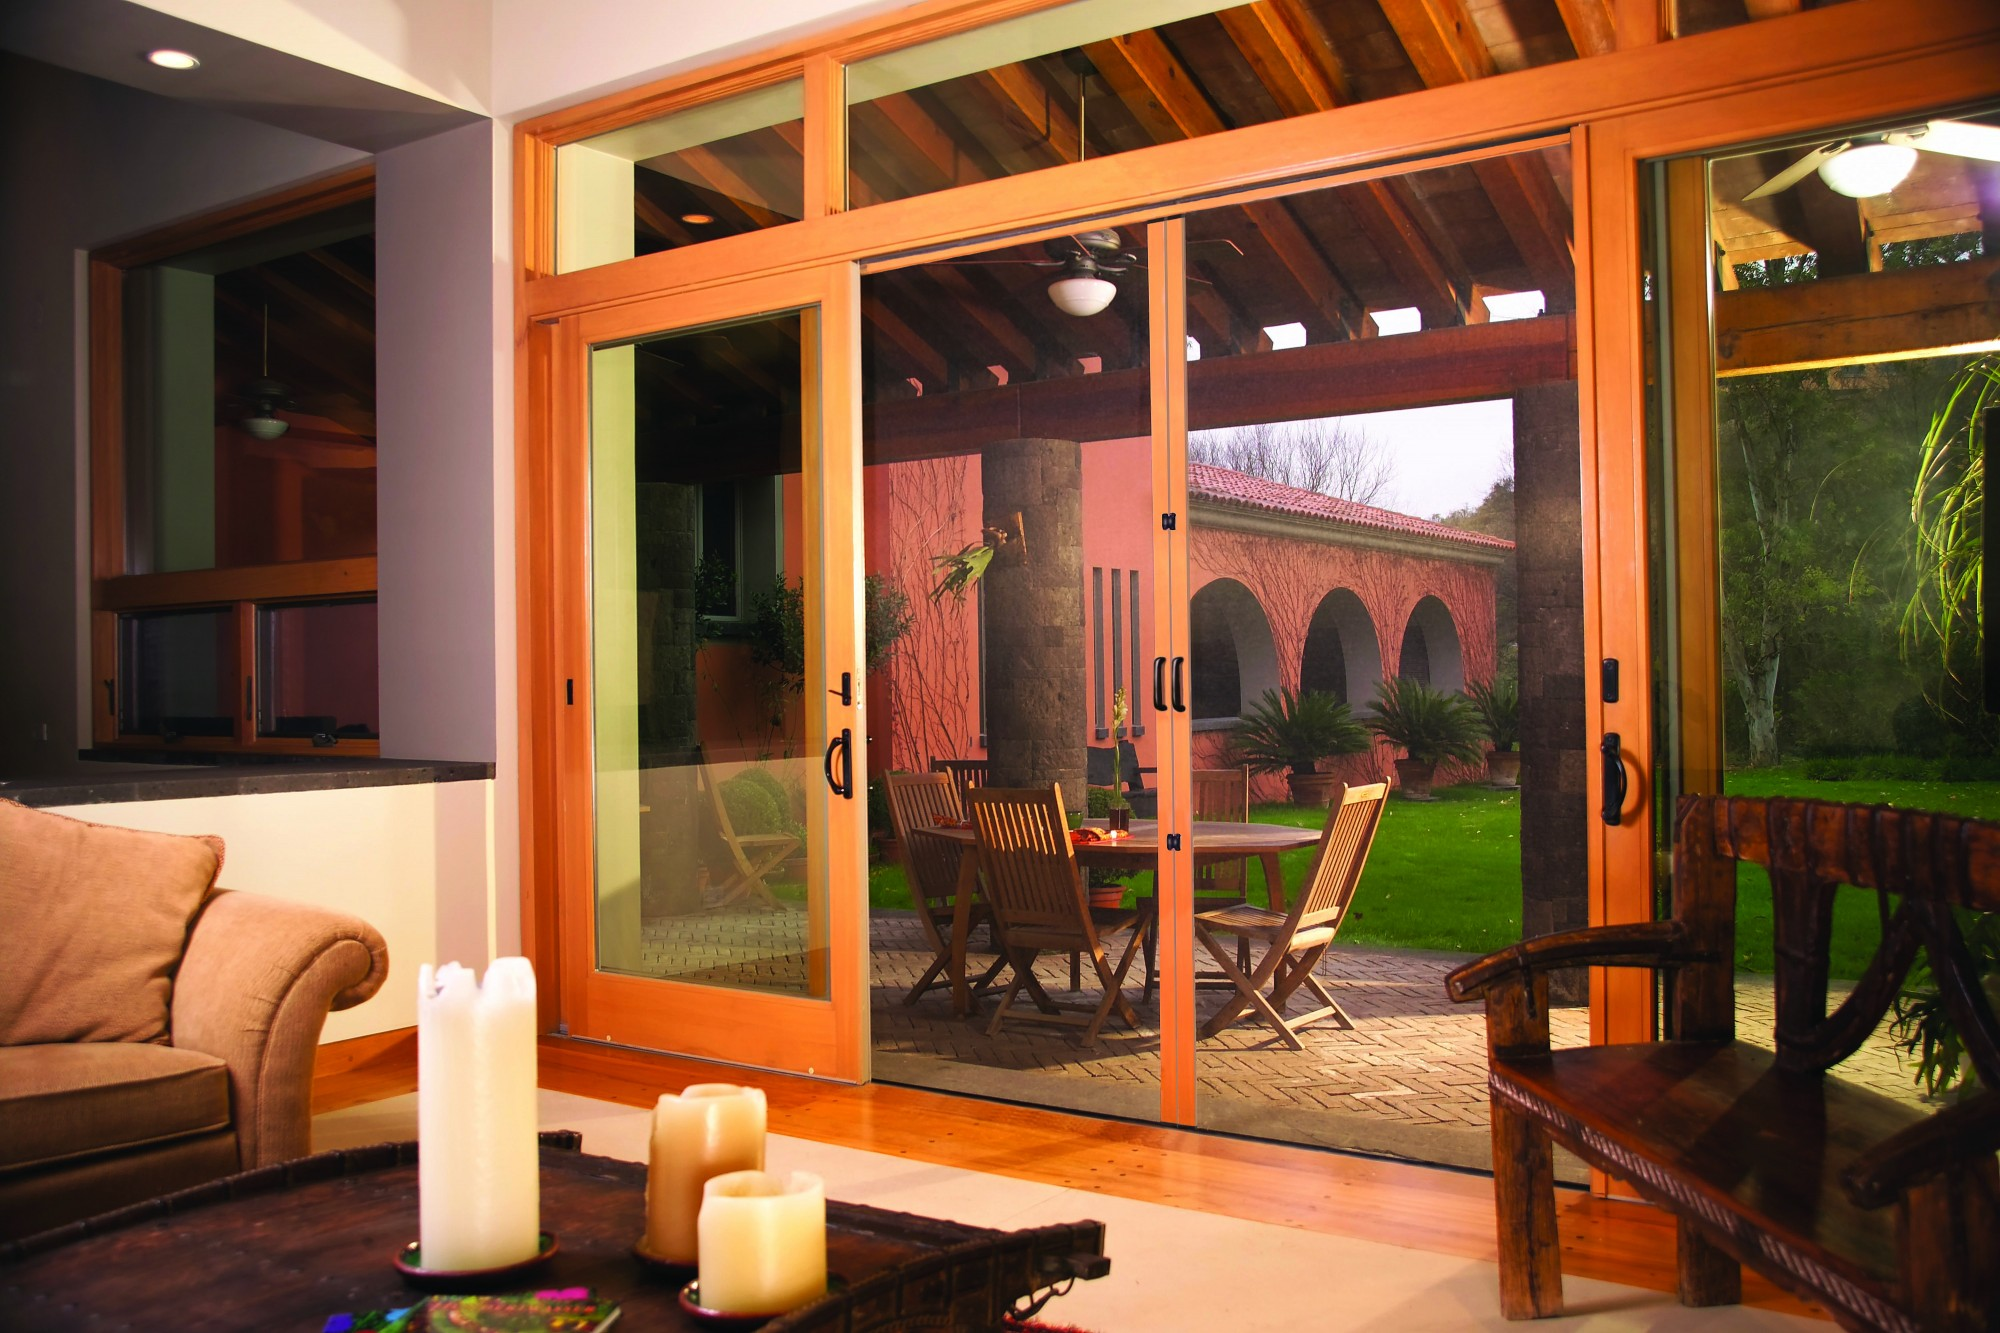 Double French doors \u2013 Mexico shoot (High-Res) & Double French doors - Mexico shoot (High-Res) - Phantom Screens